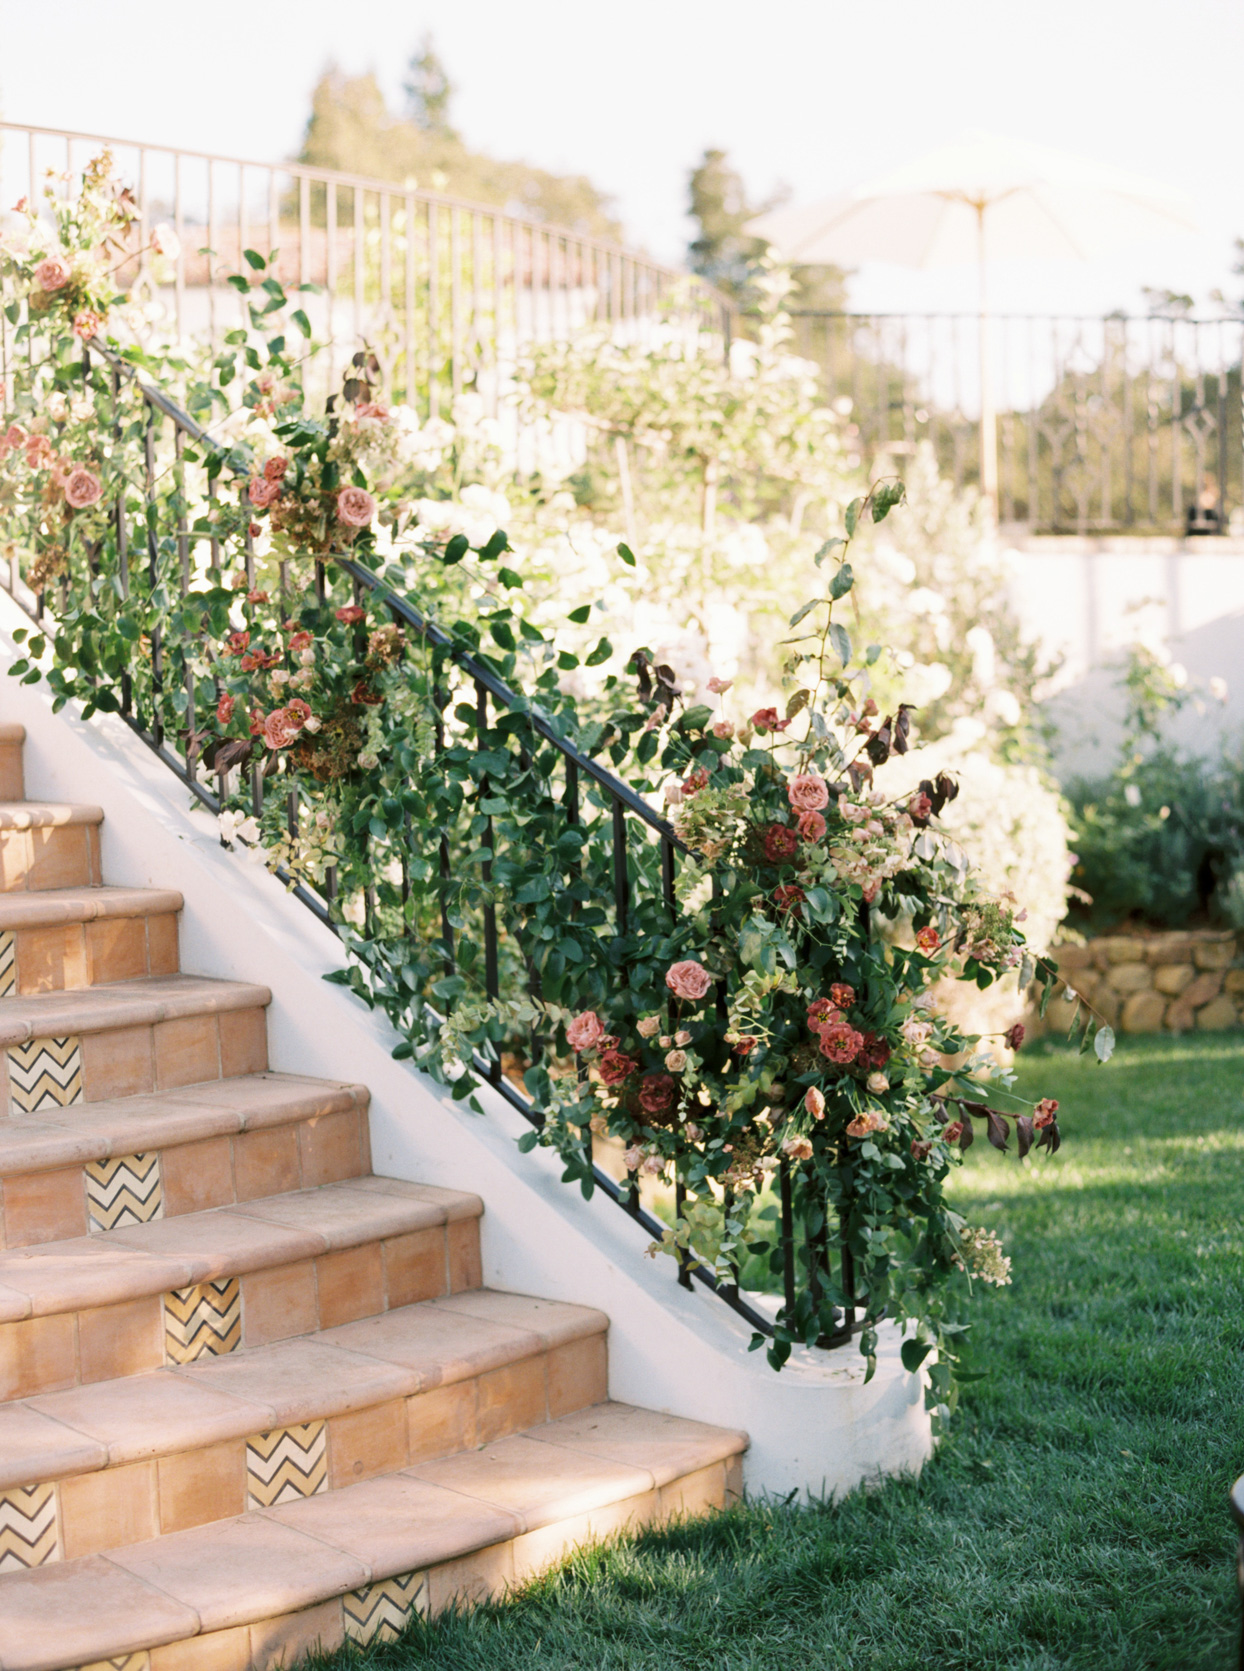 patterned steps down to wedding ceremony grassy landing with flowers on the bannister